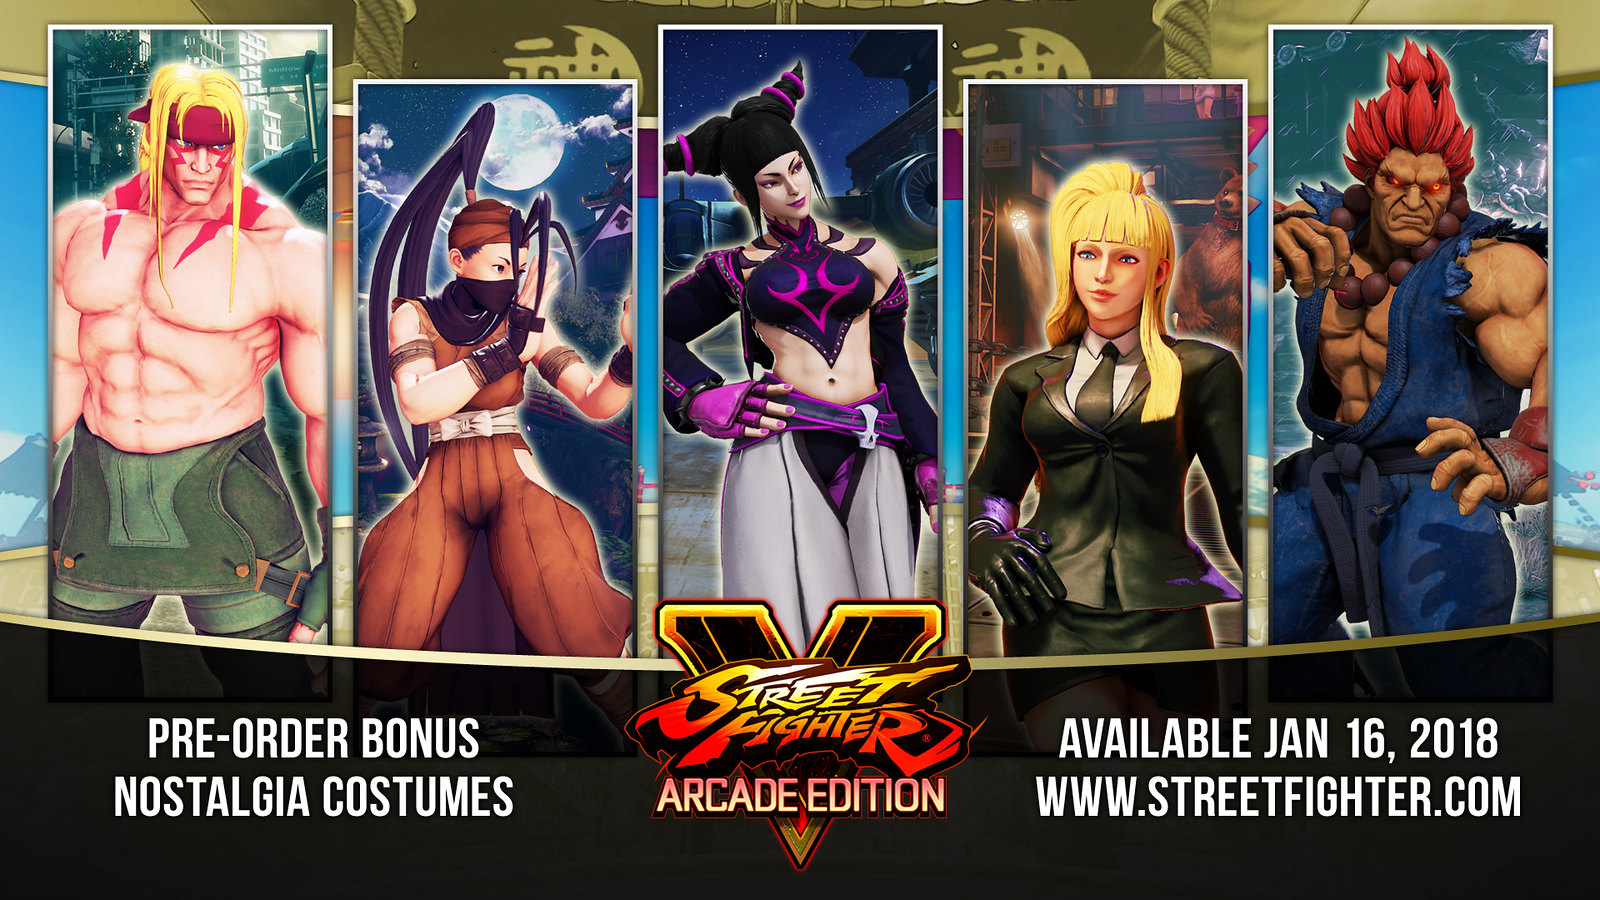 5 Things To Try In Street Fighter V Arcade Edition Out Jan 16